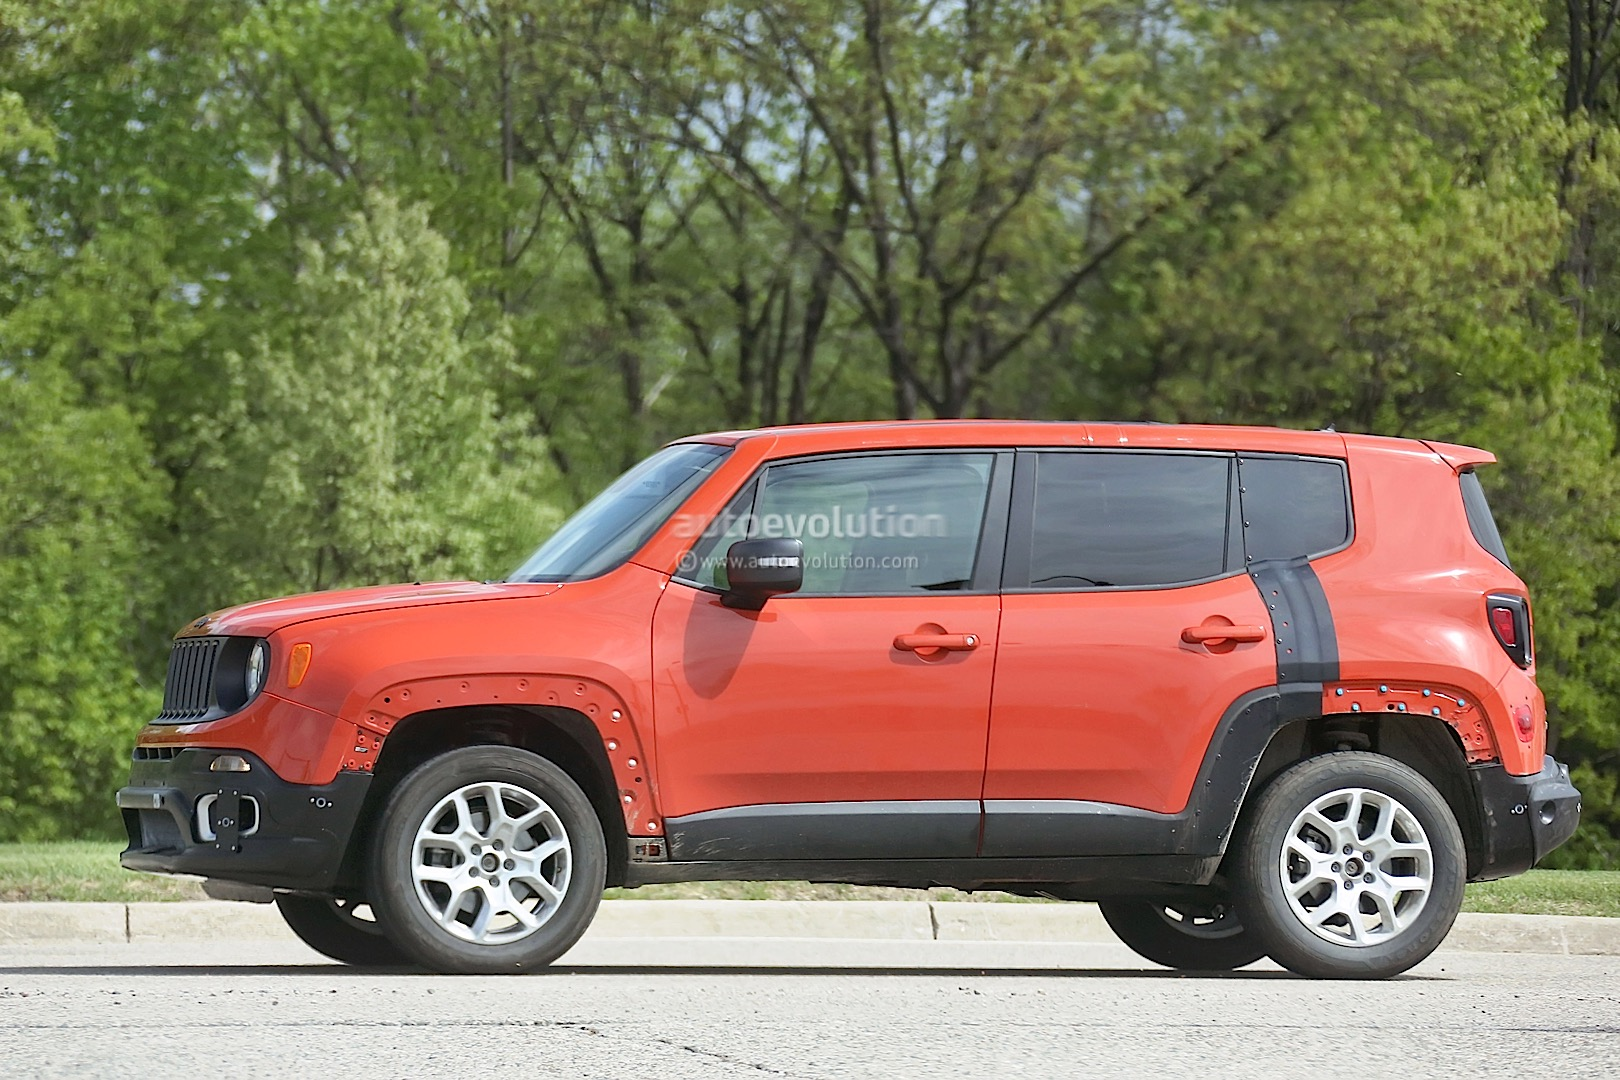 Jeep C Suv Prototype Spied Wearing Renegade Body Shell Photo Gallery on 2015 Chrysler 200 Battery